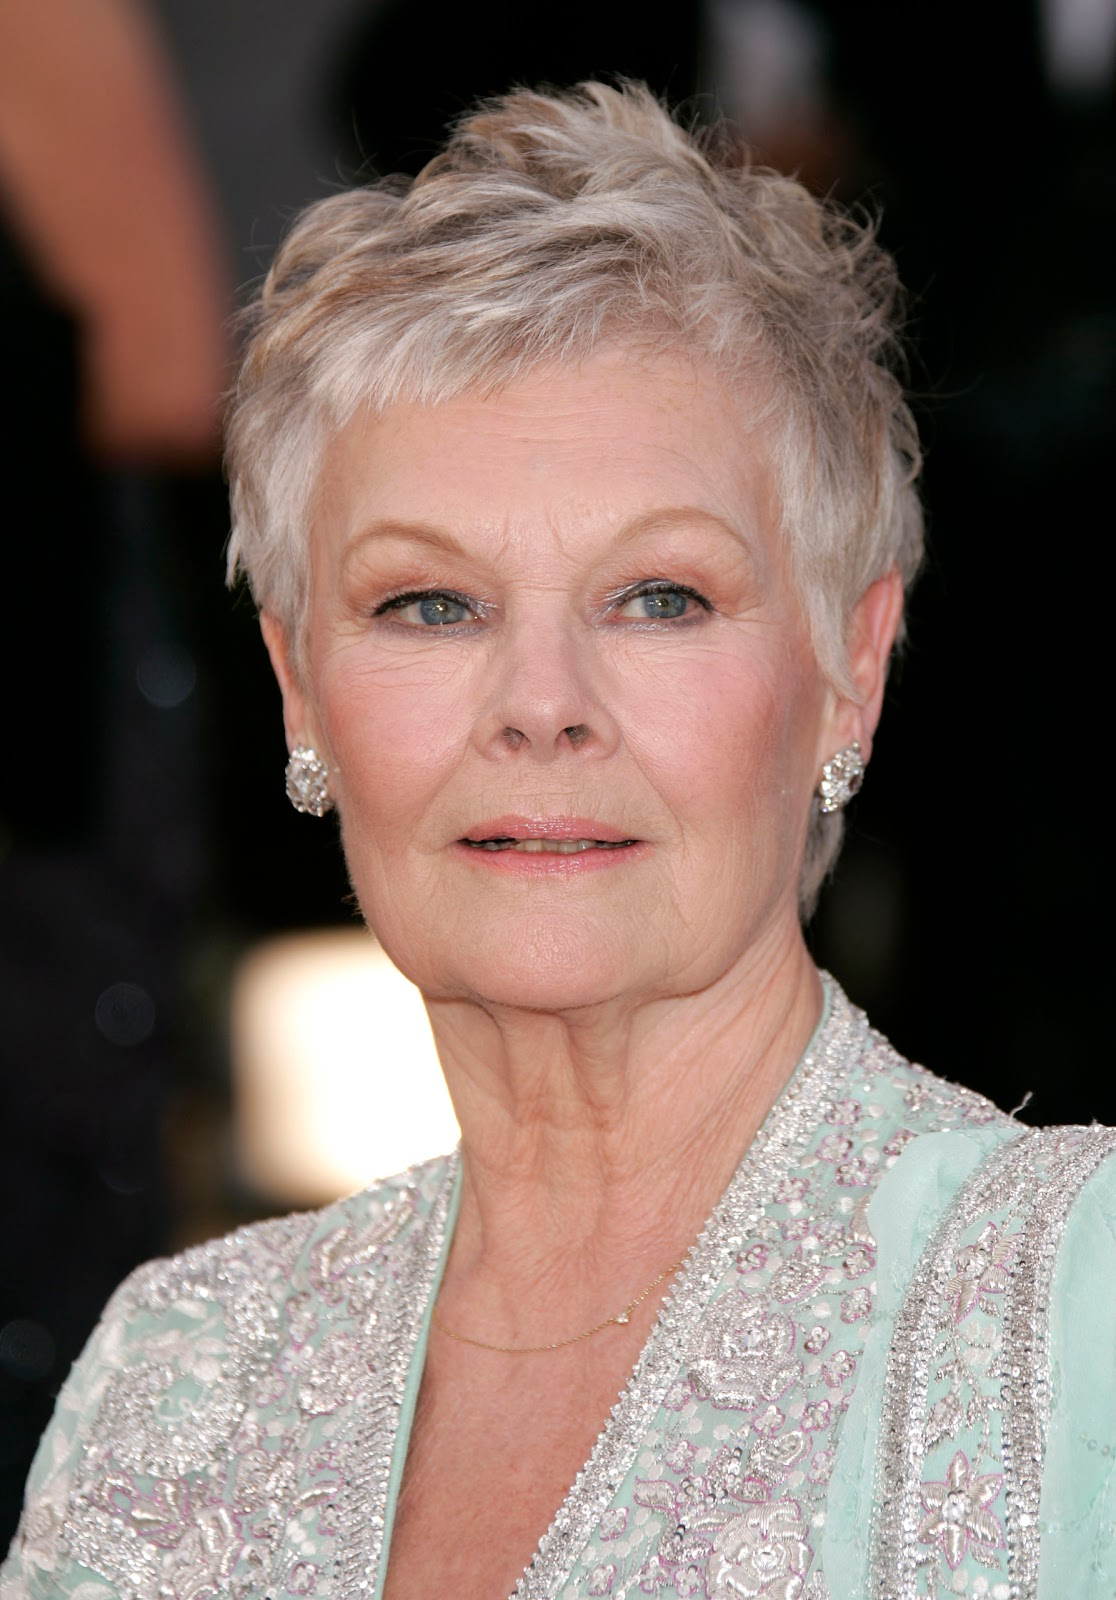 90 classy and simple short hairstyles for women over 50 | hair